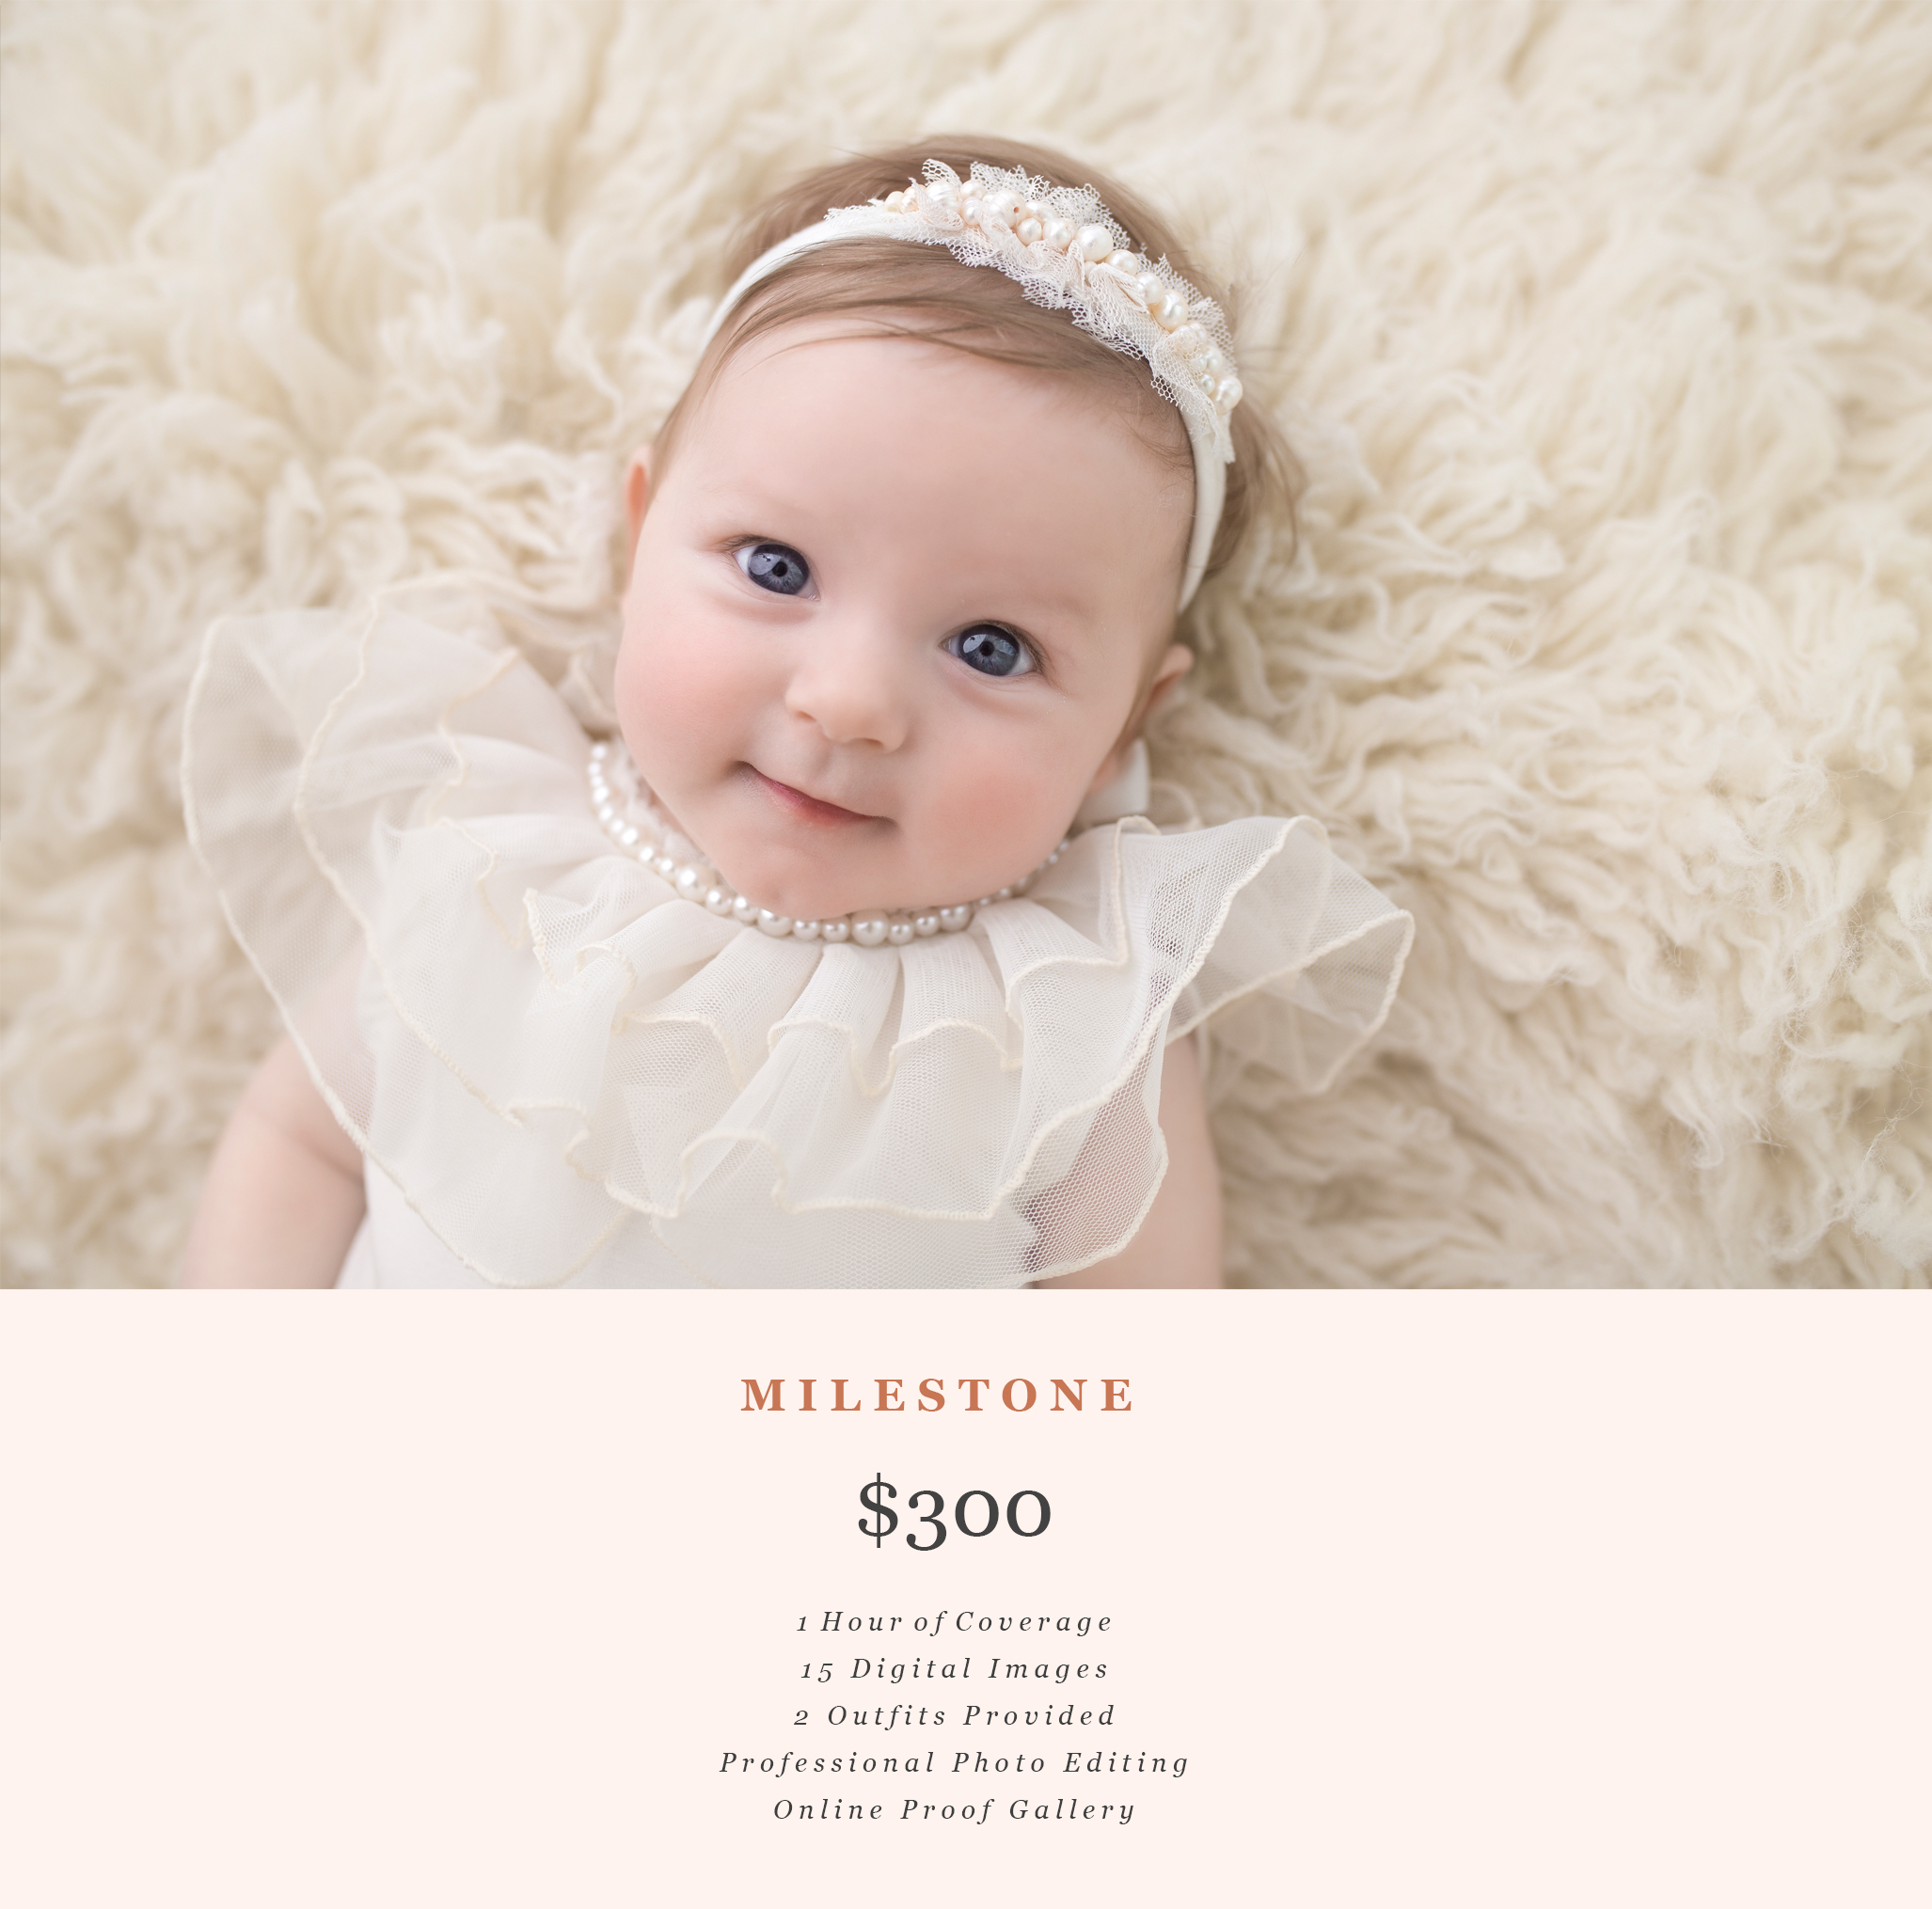 fayetteville photographer, nc, milestone session, baby photographer, pricing, pricing guide